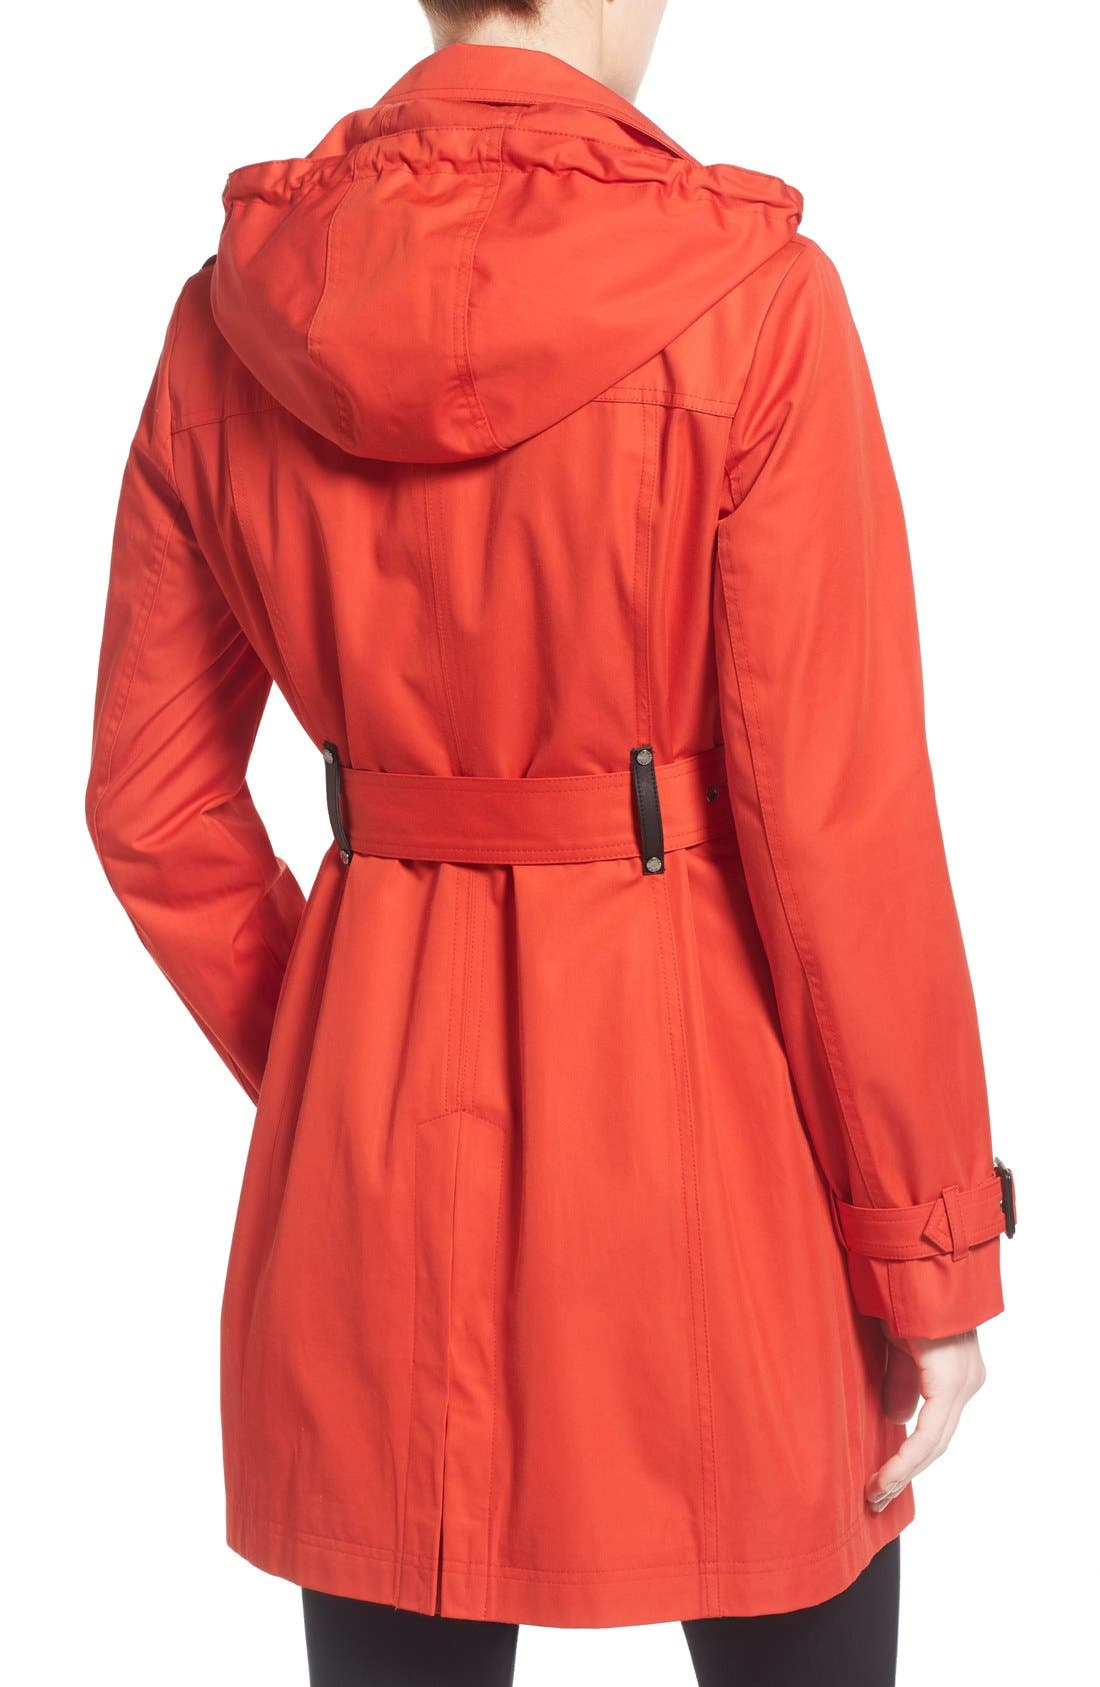 Alternate Image 2  - MICHAEL Michael Kors Single Breasted Raincoat (Regular & Petite)